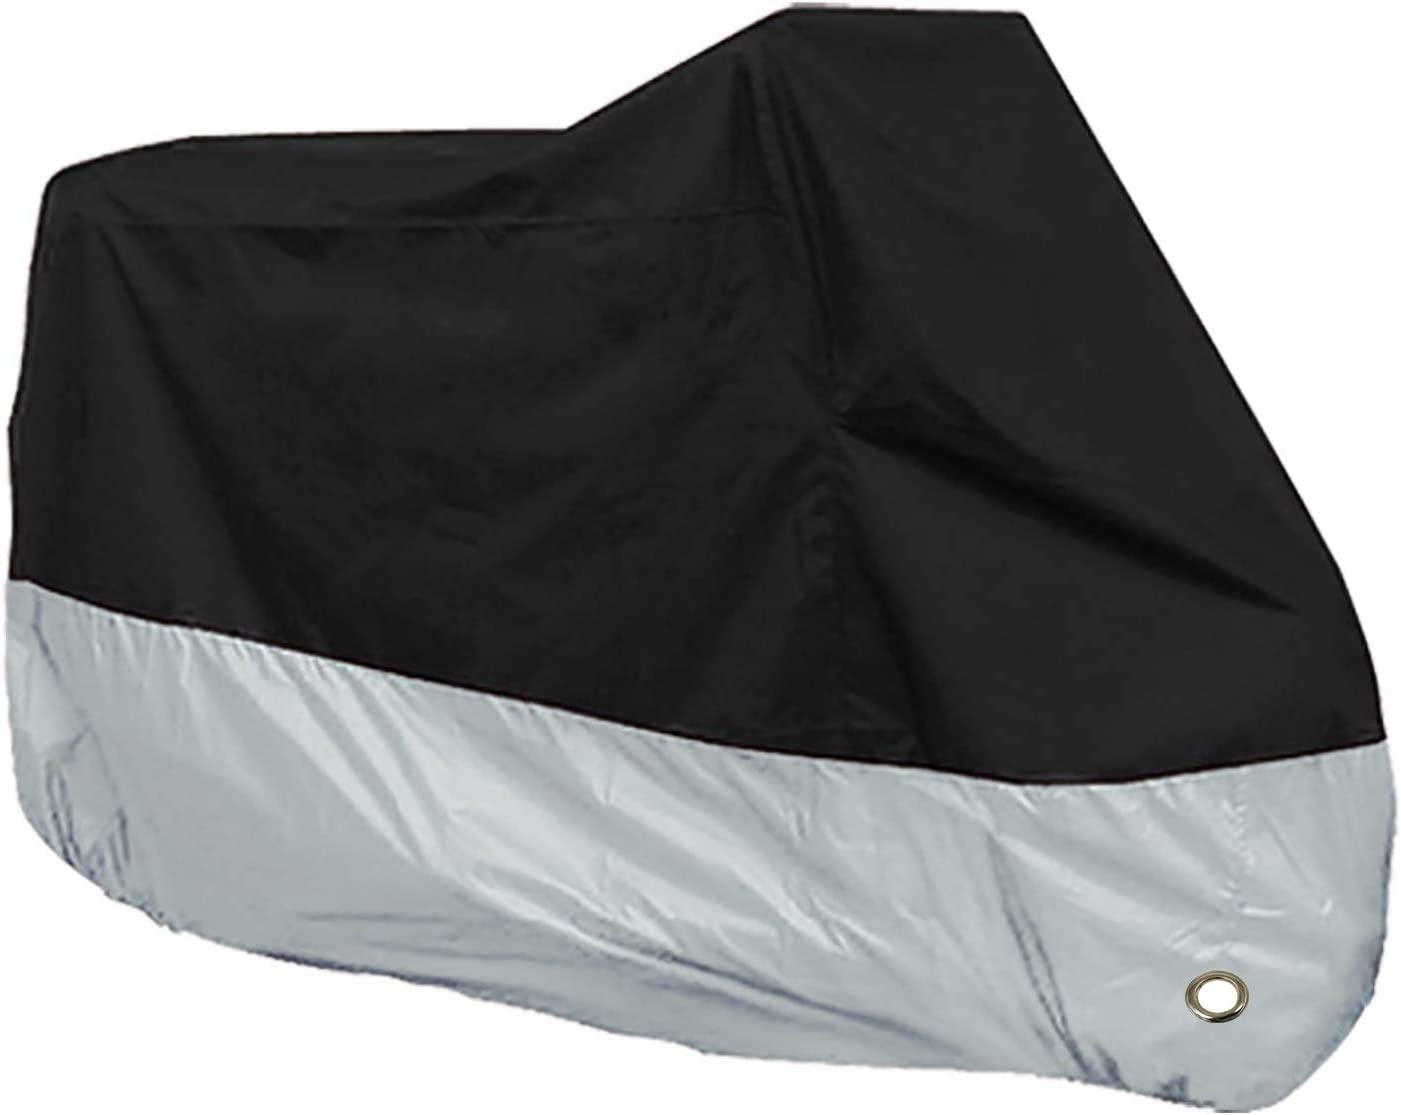 HEQCG Motorcycle Cover Compatible Large-scale sale Covers with Max 90% OFF Kawasak